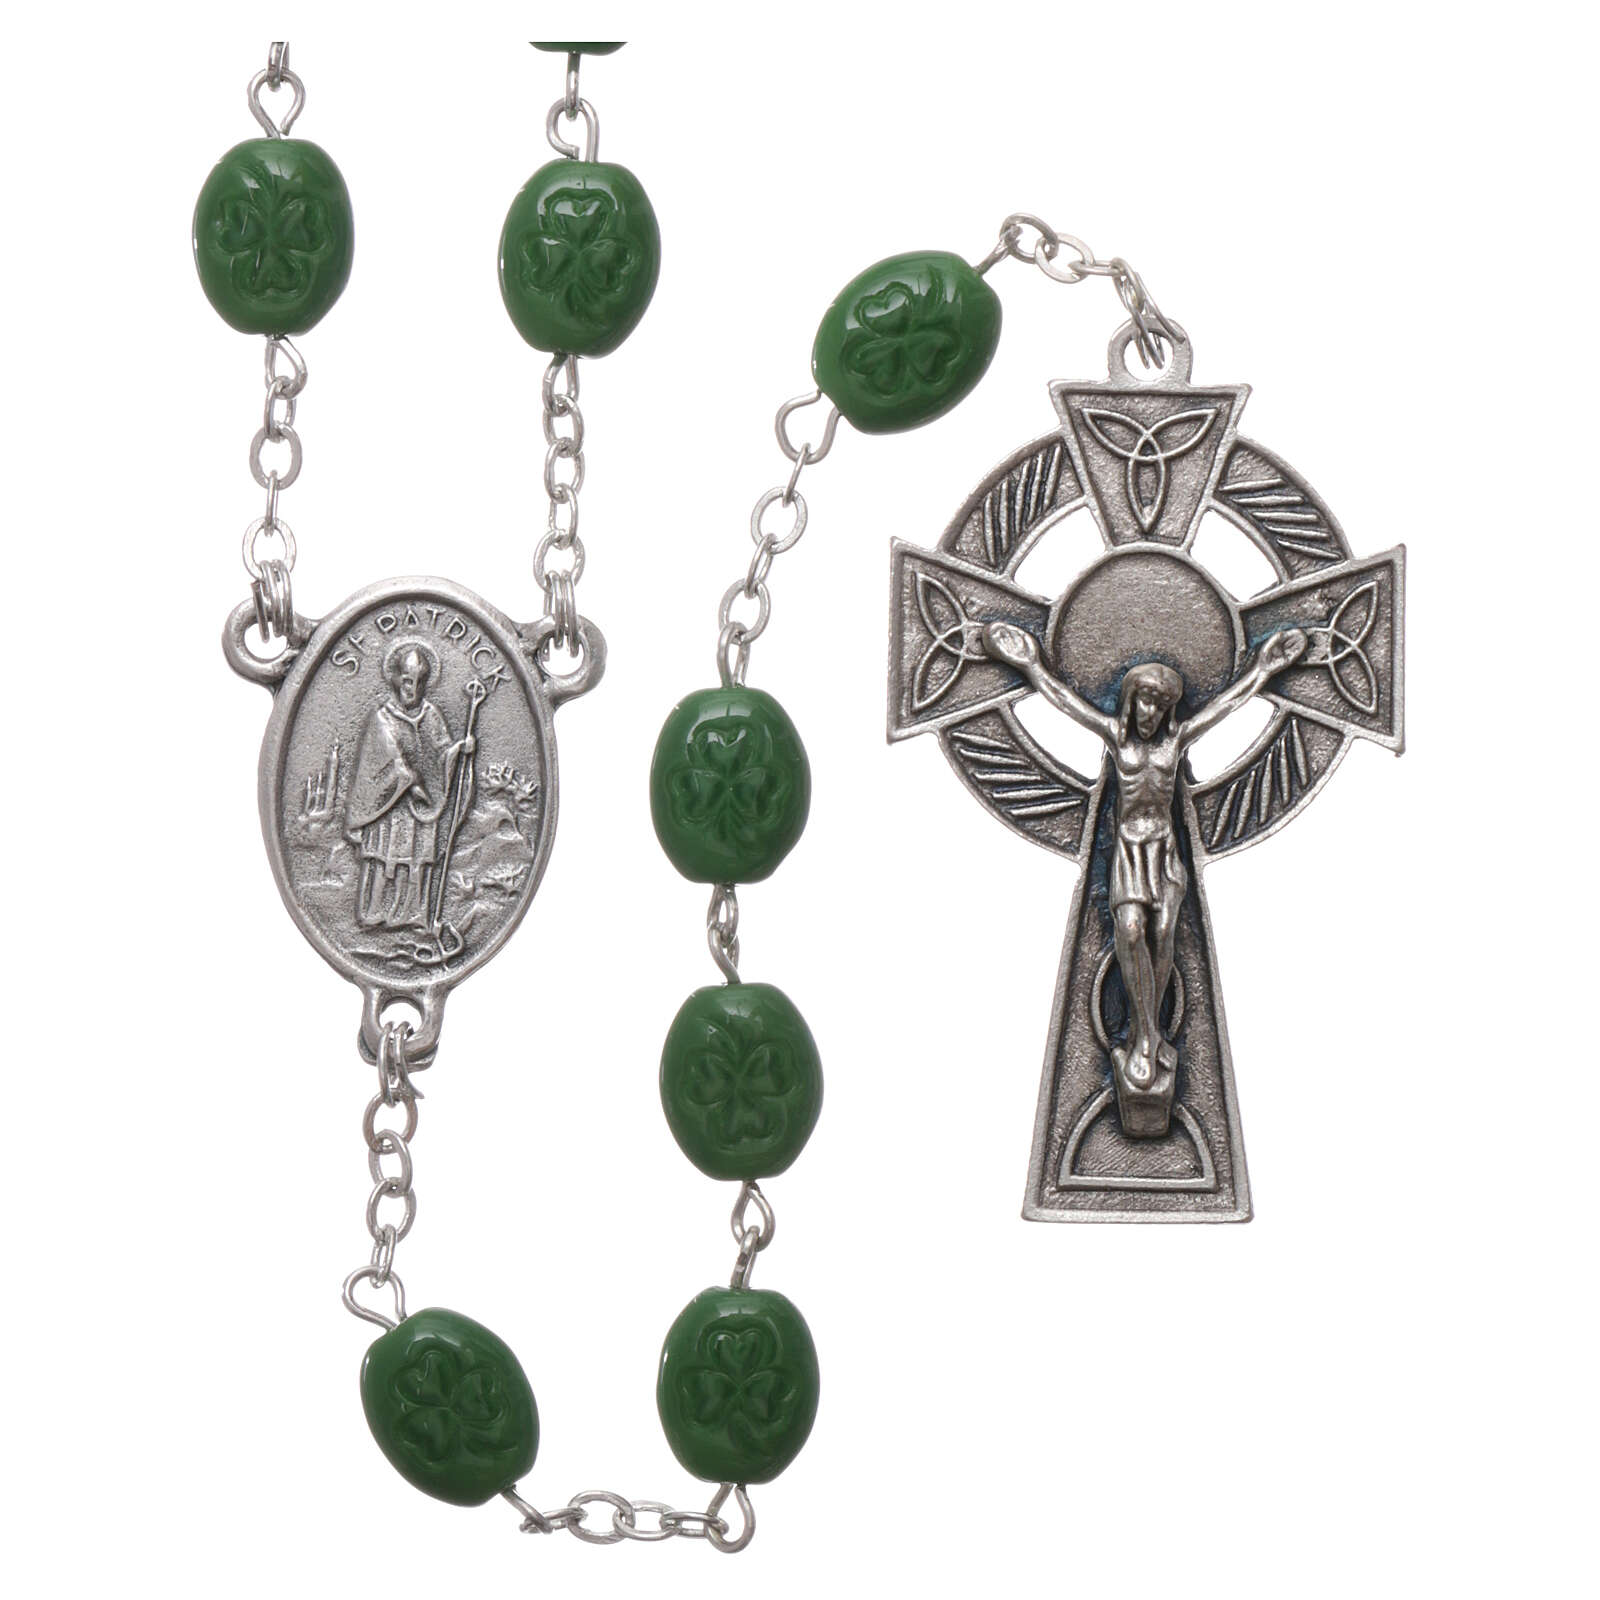 Glass rosary St Patrick clover shaped beads 8x6 mm 4